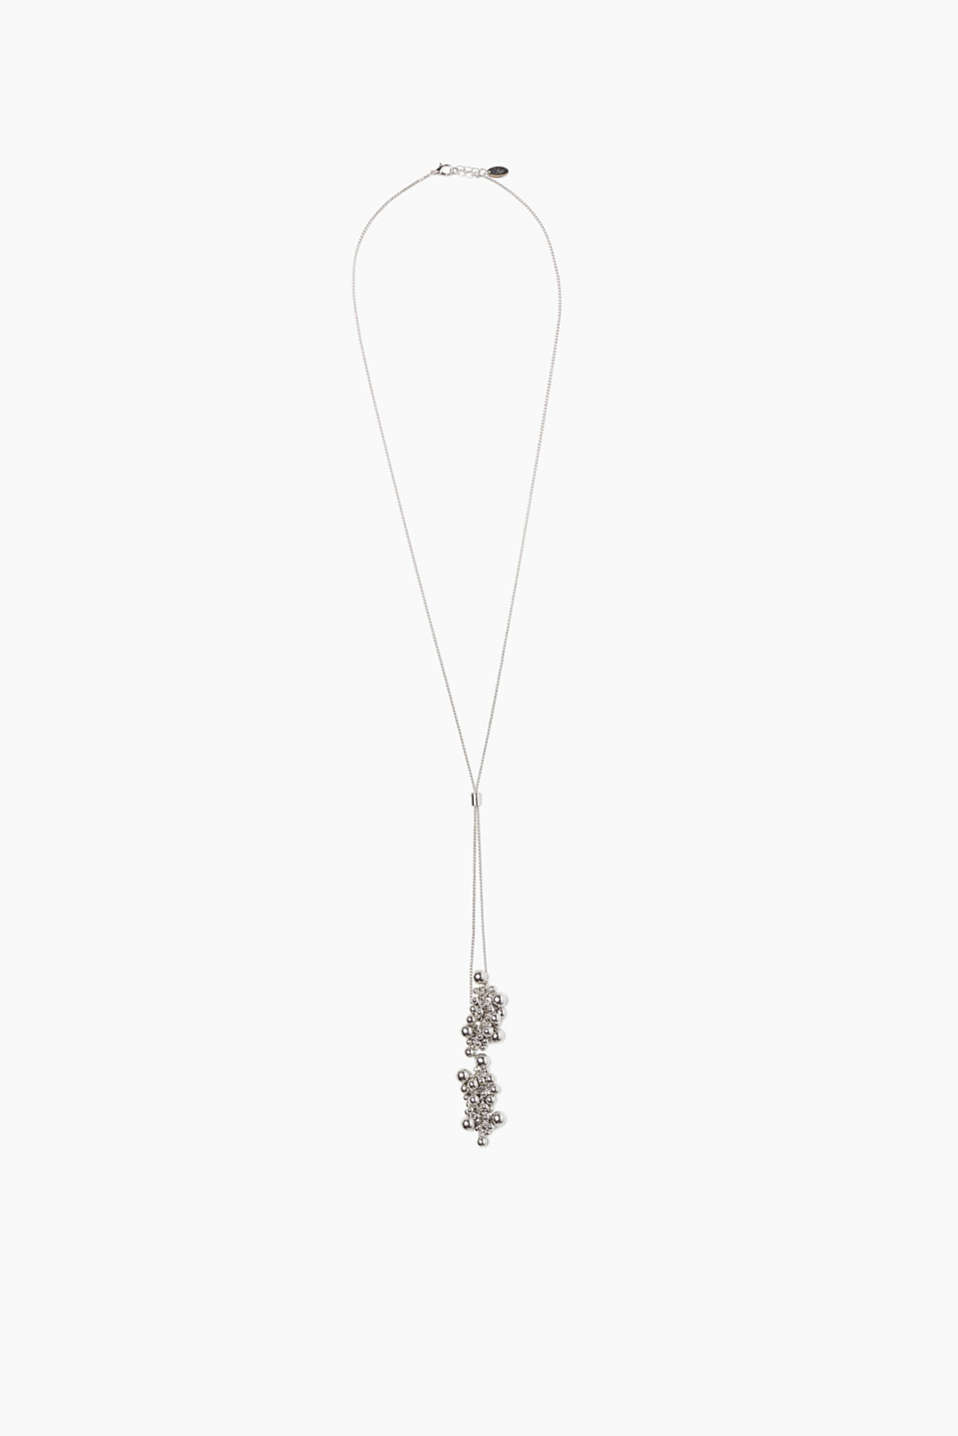 With an element for adjusting the length: long pendant necklace with bead pendants on the open ends